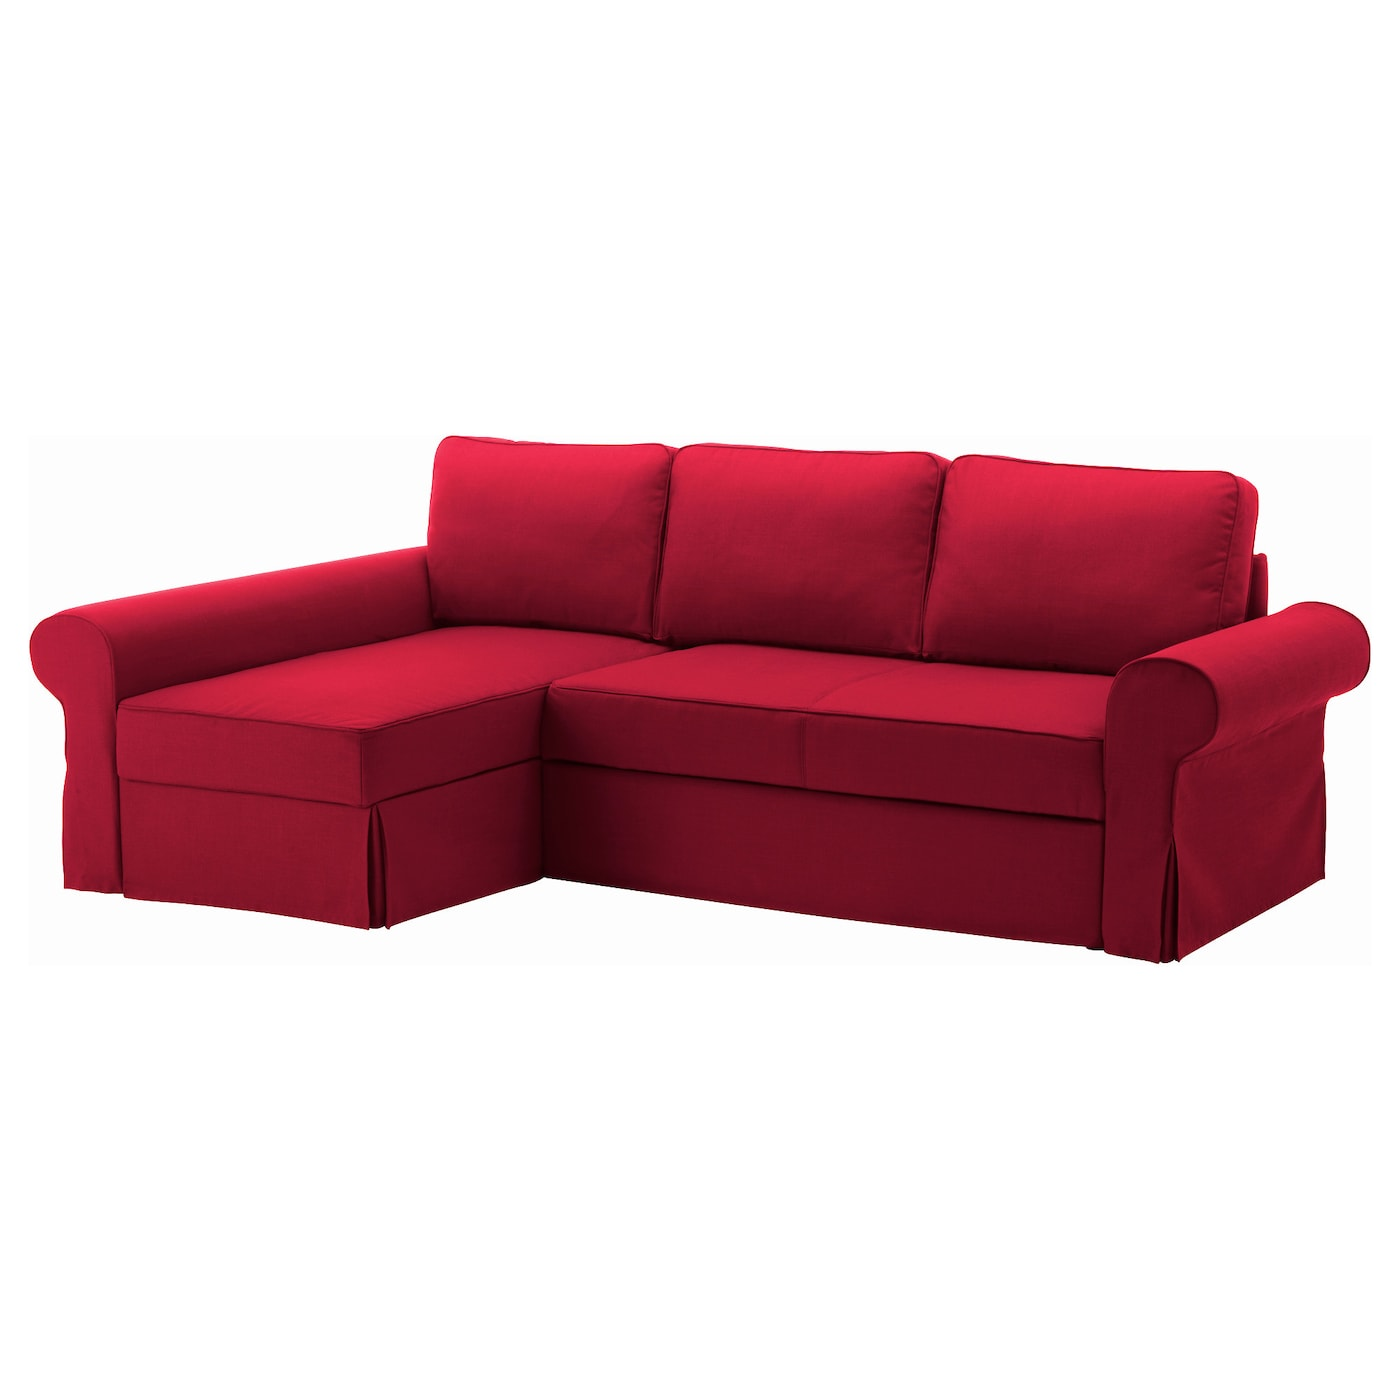 Backabro sofa bed with chaise longue nordvalla red ikea - Sofa rinconera con chaise longue ...